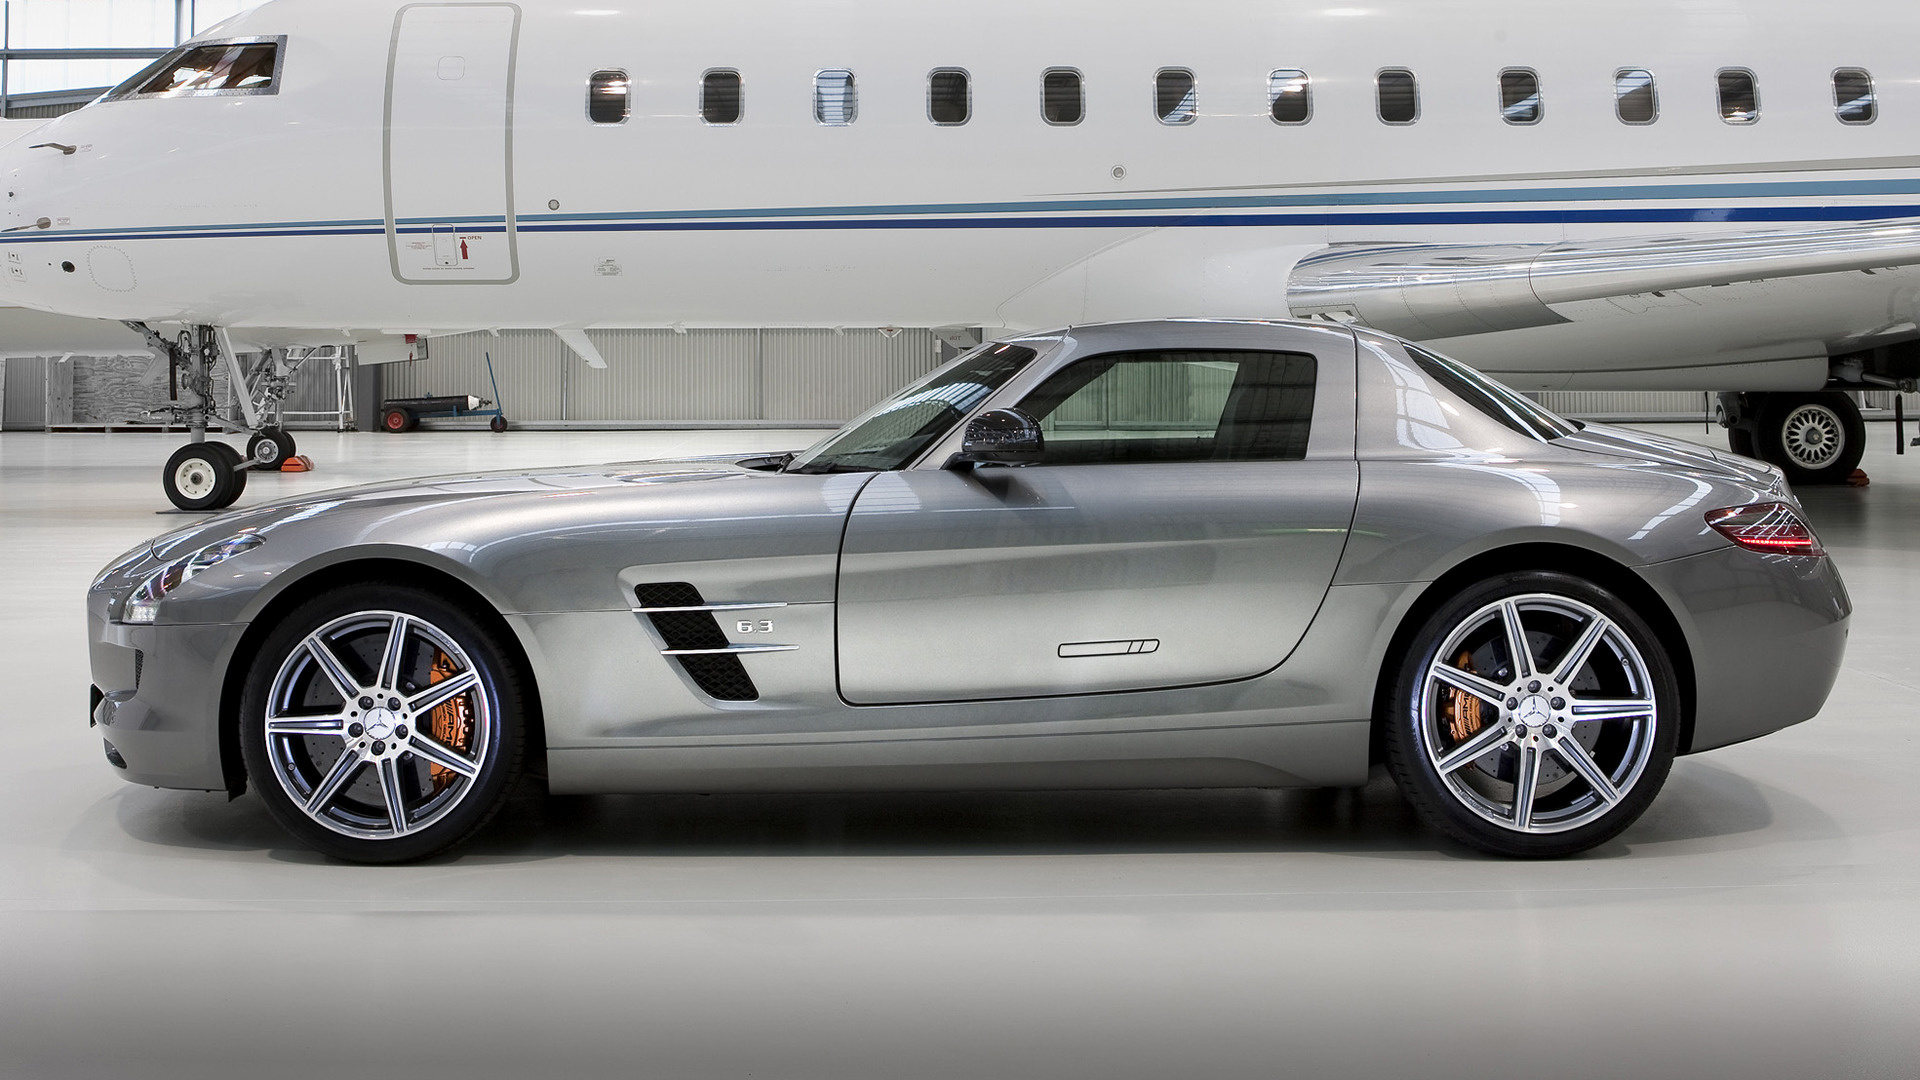 Mercedes Benz SLS AMG 2010 AU Wallpapers and HD Car Pixel